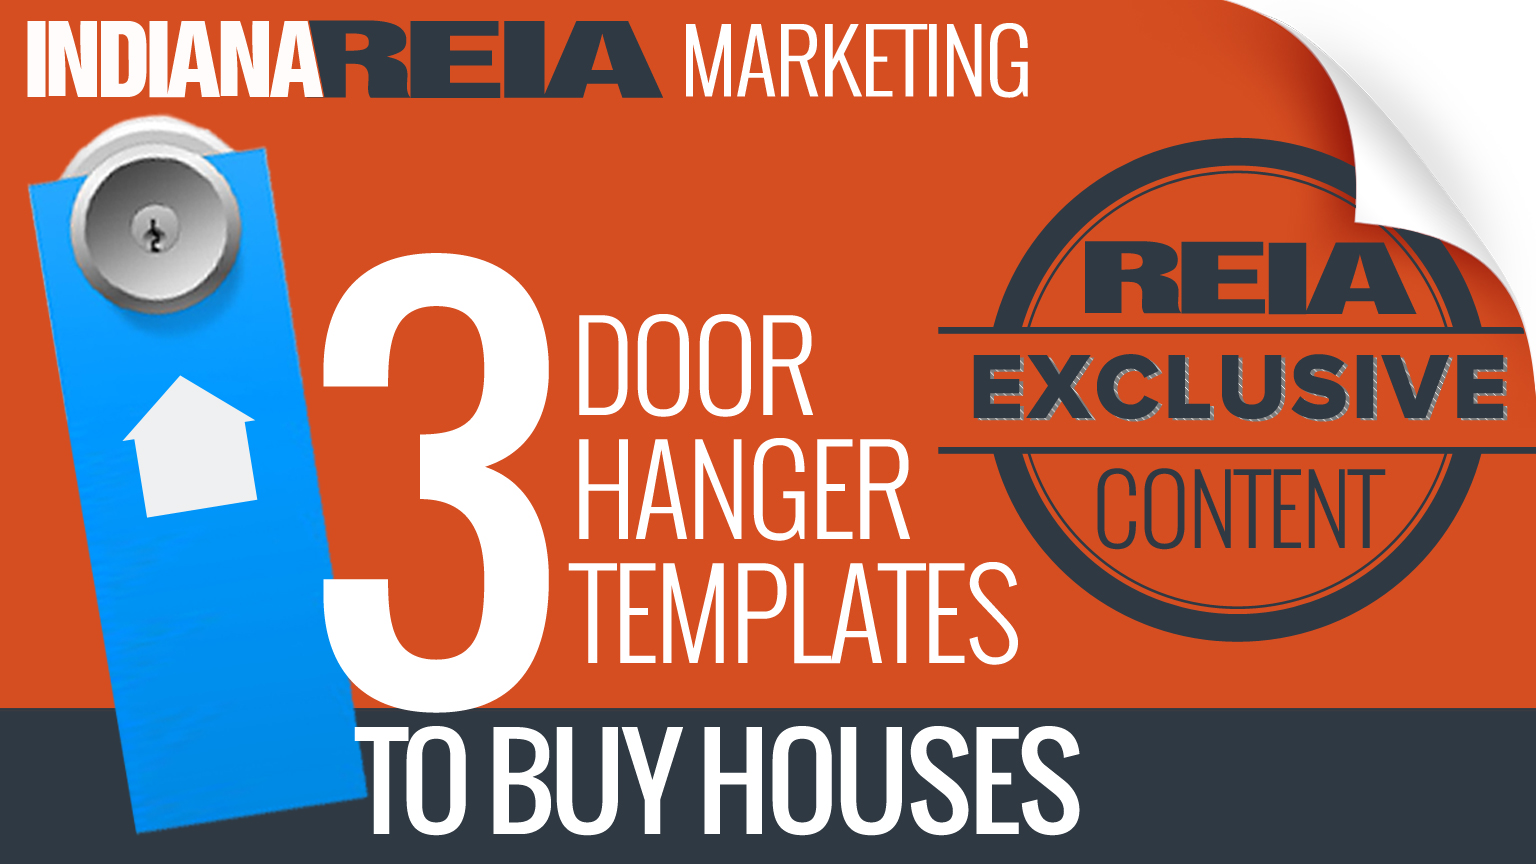 Door Hanger Templates to Buy Houses to Flip or Income Property to Hold Long-term Cash-flow